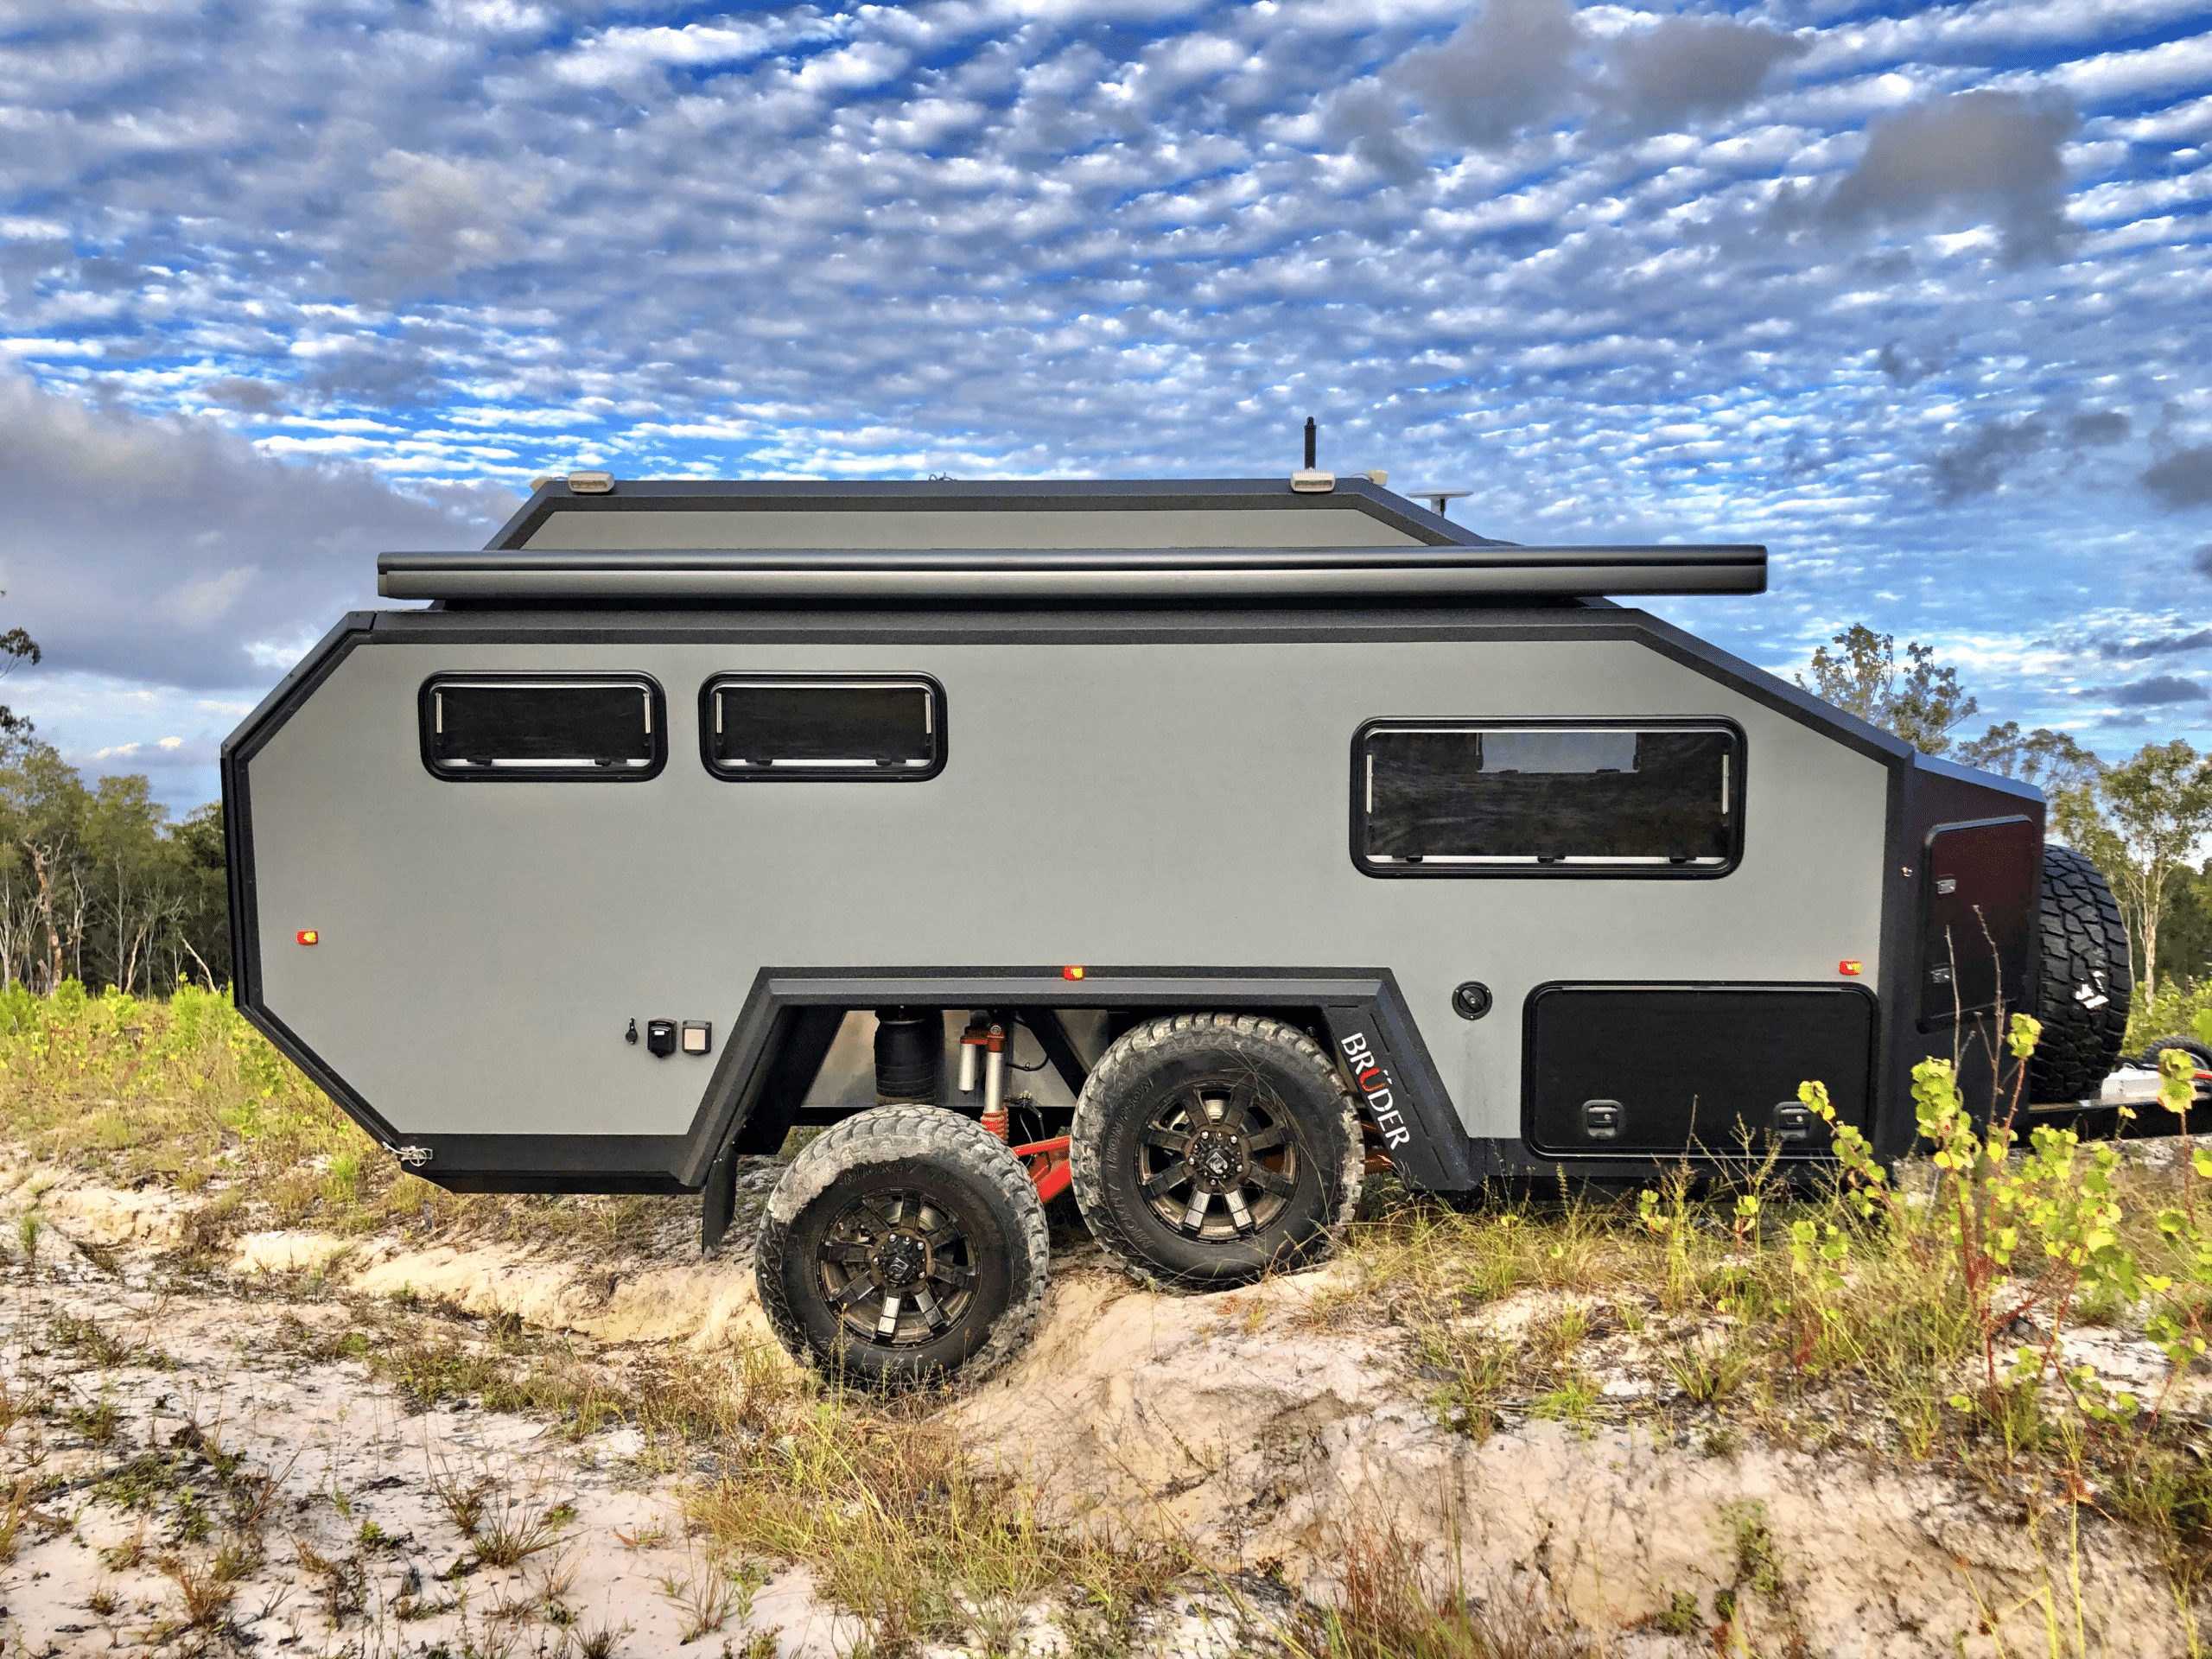 Read more about the article BRUDER – EXP-6 Expedition Trailer